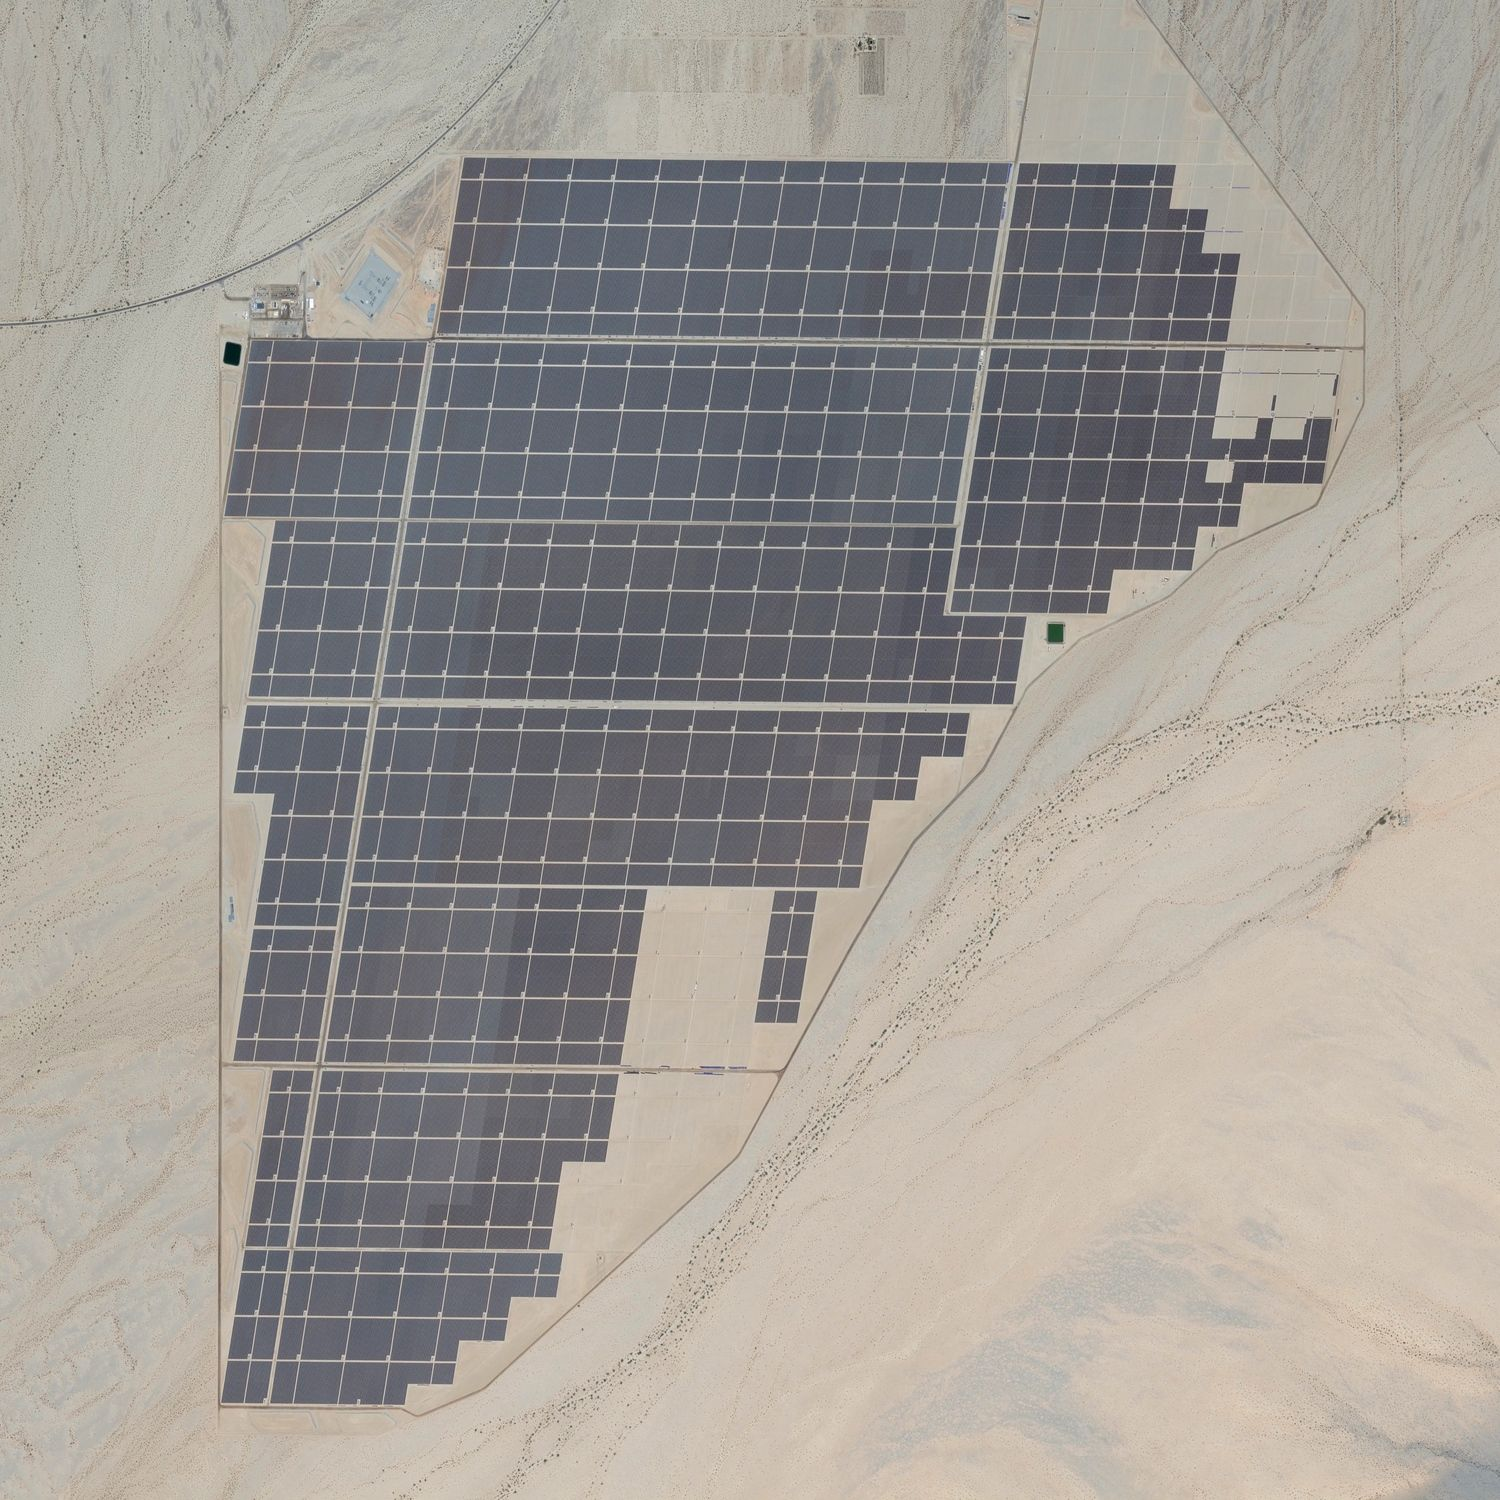 Pin By Nomad On Satellite Drones Solar Farm Birds Eye Aerial Photo